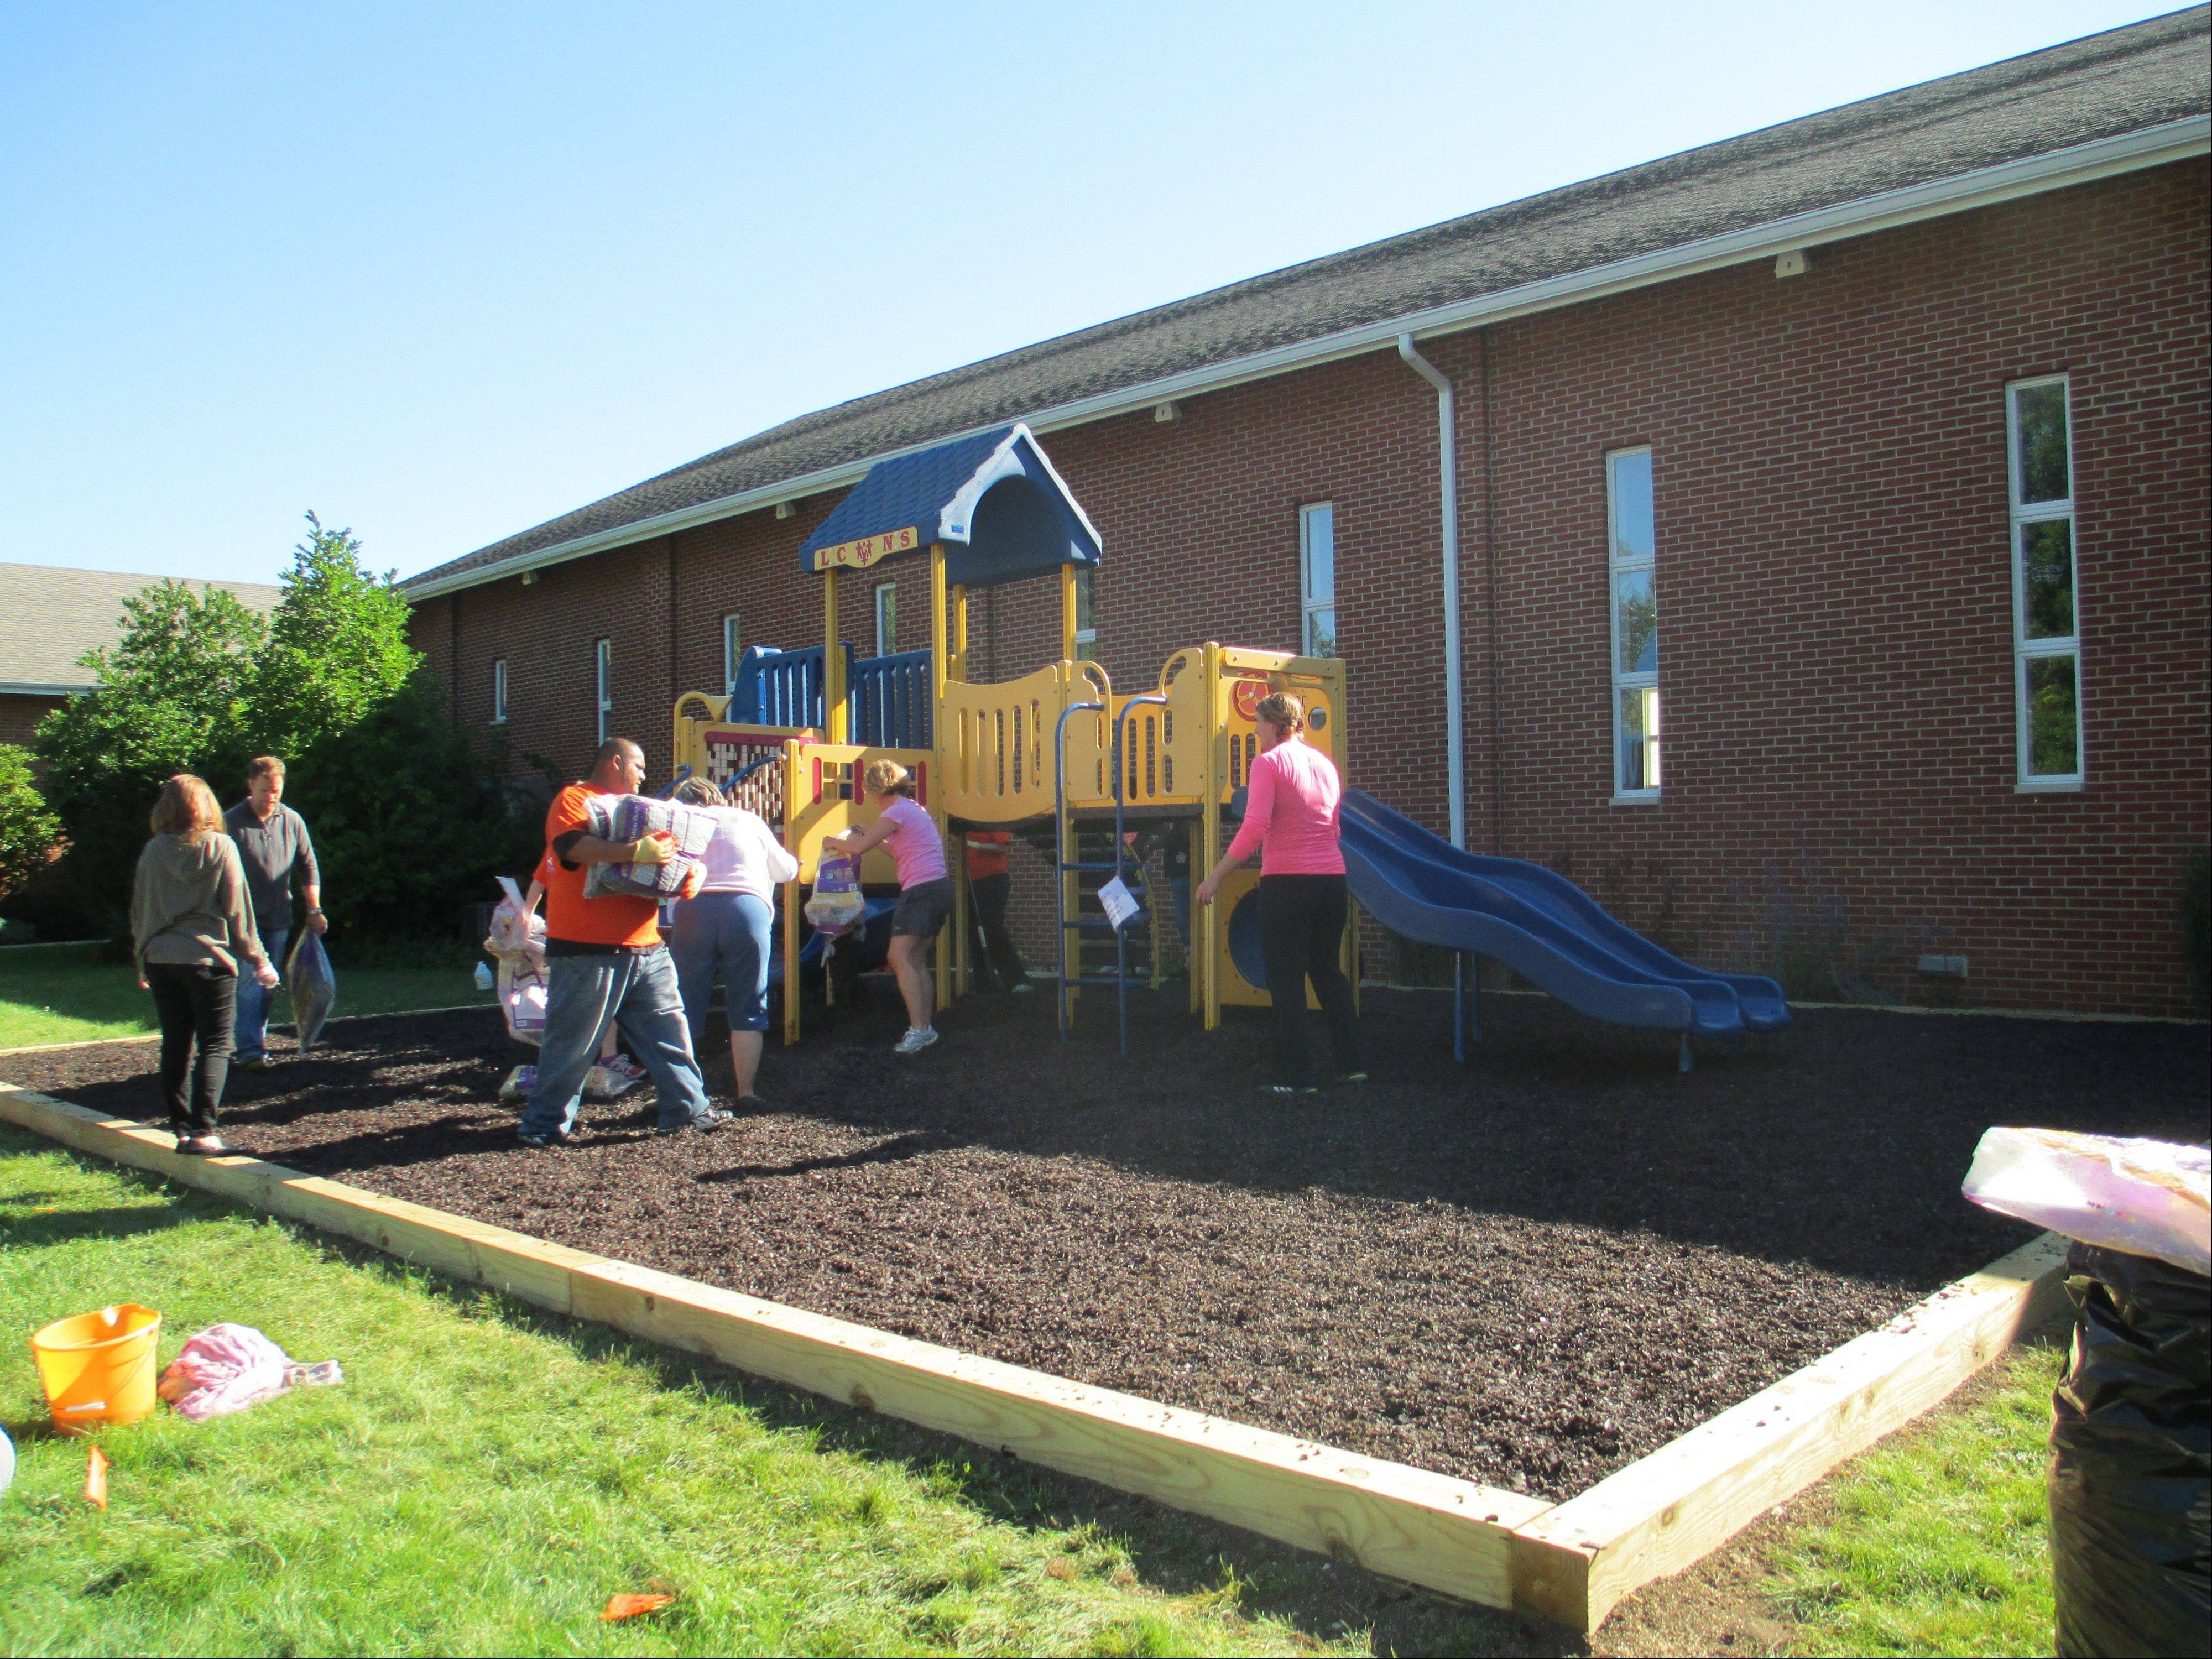 Libertyville Cooperative Nursery School�s staff, board of directors and various volunteers spread rubber mulch at the preschool�s new playground at Trinity Community Church in Libertyville.